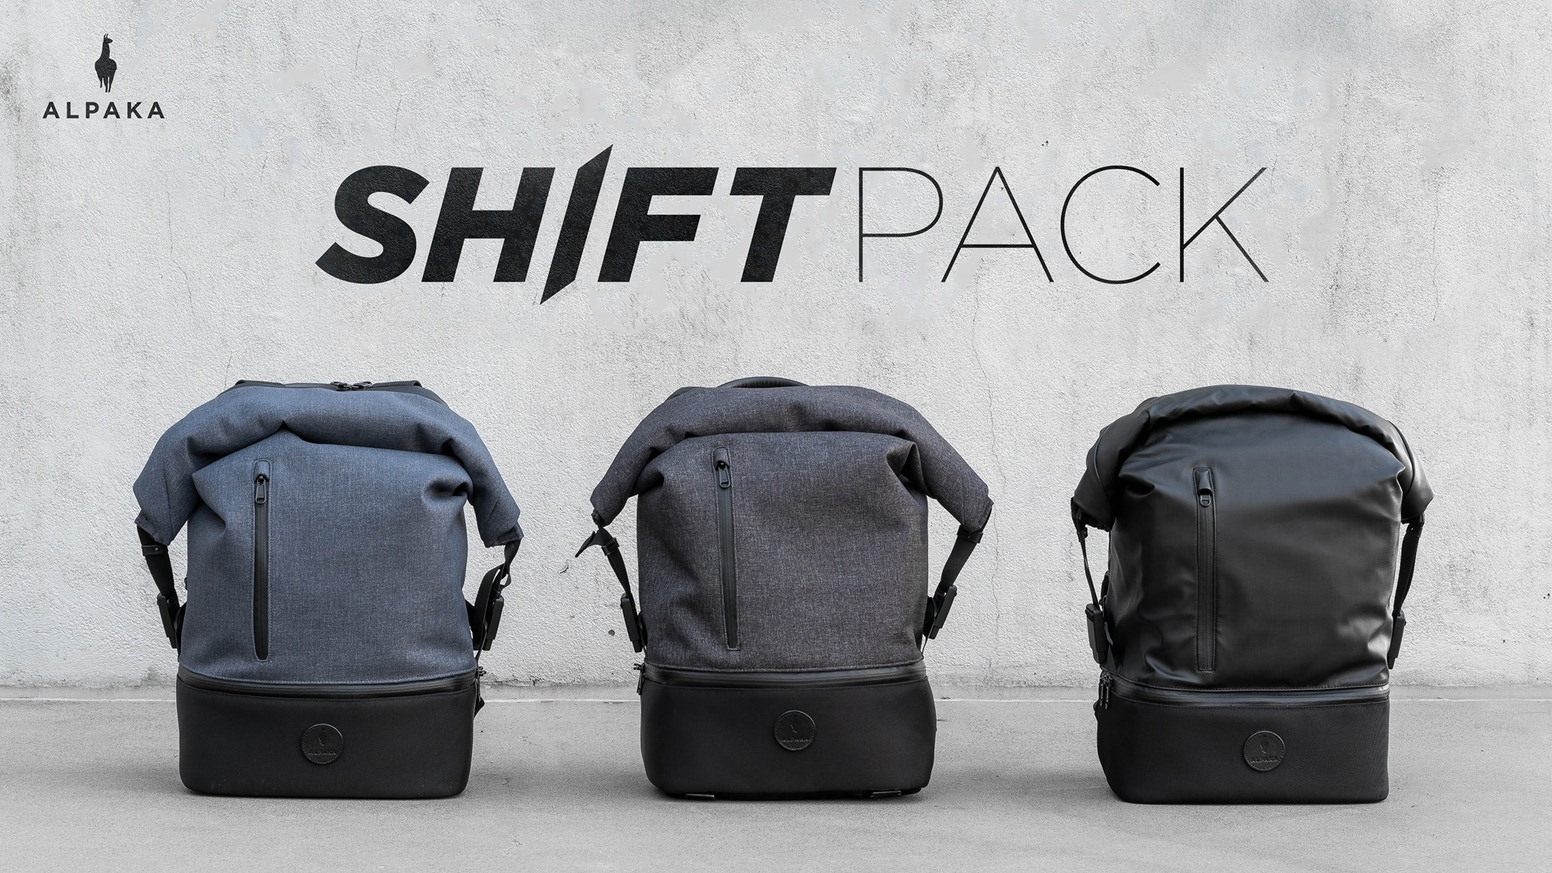 The Shift Pack is a stylish everyday backpack designed to adapt to your lifestyle. Modular, Versatile and Functional.